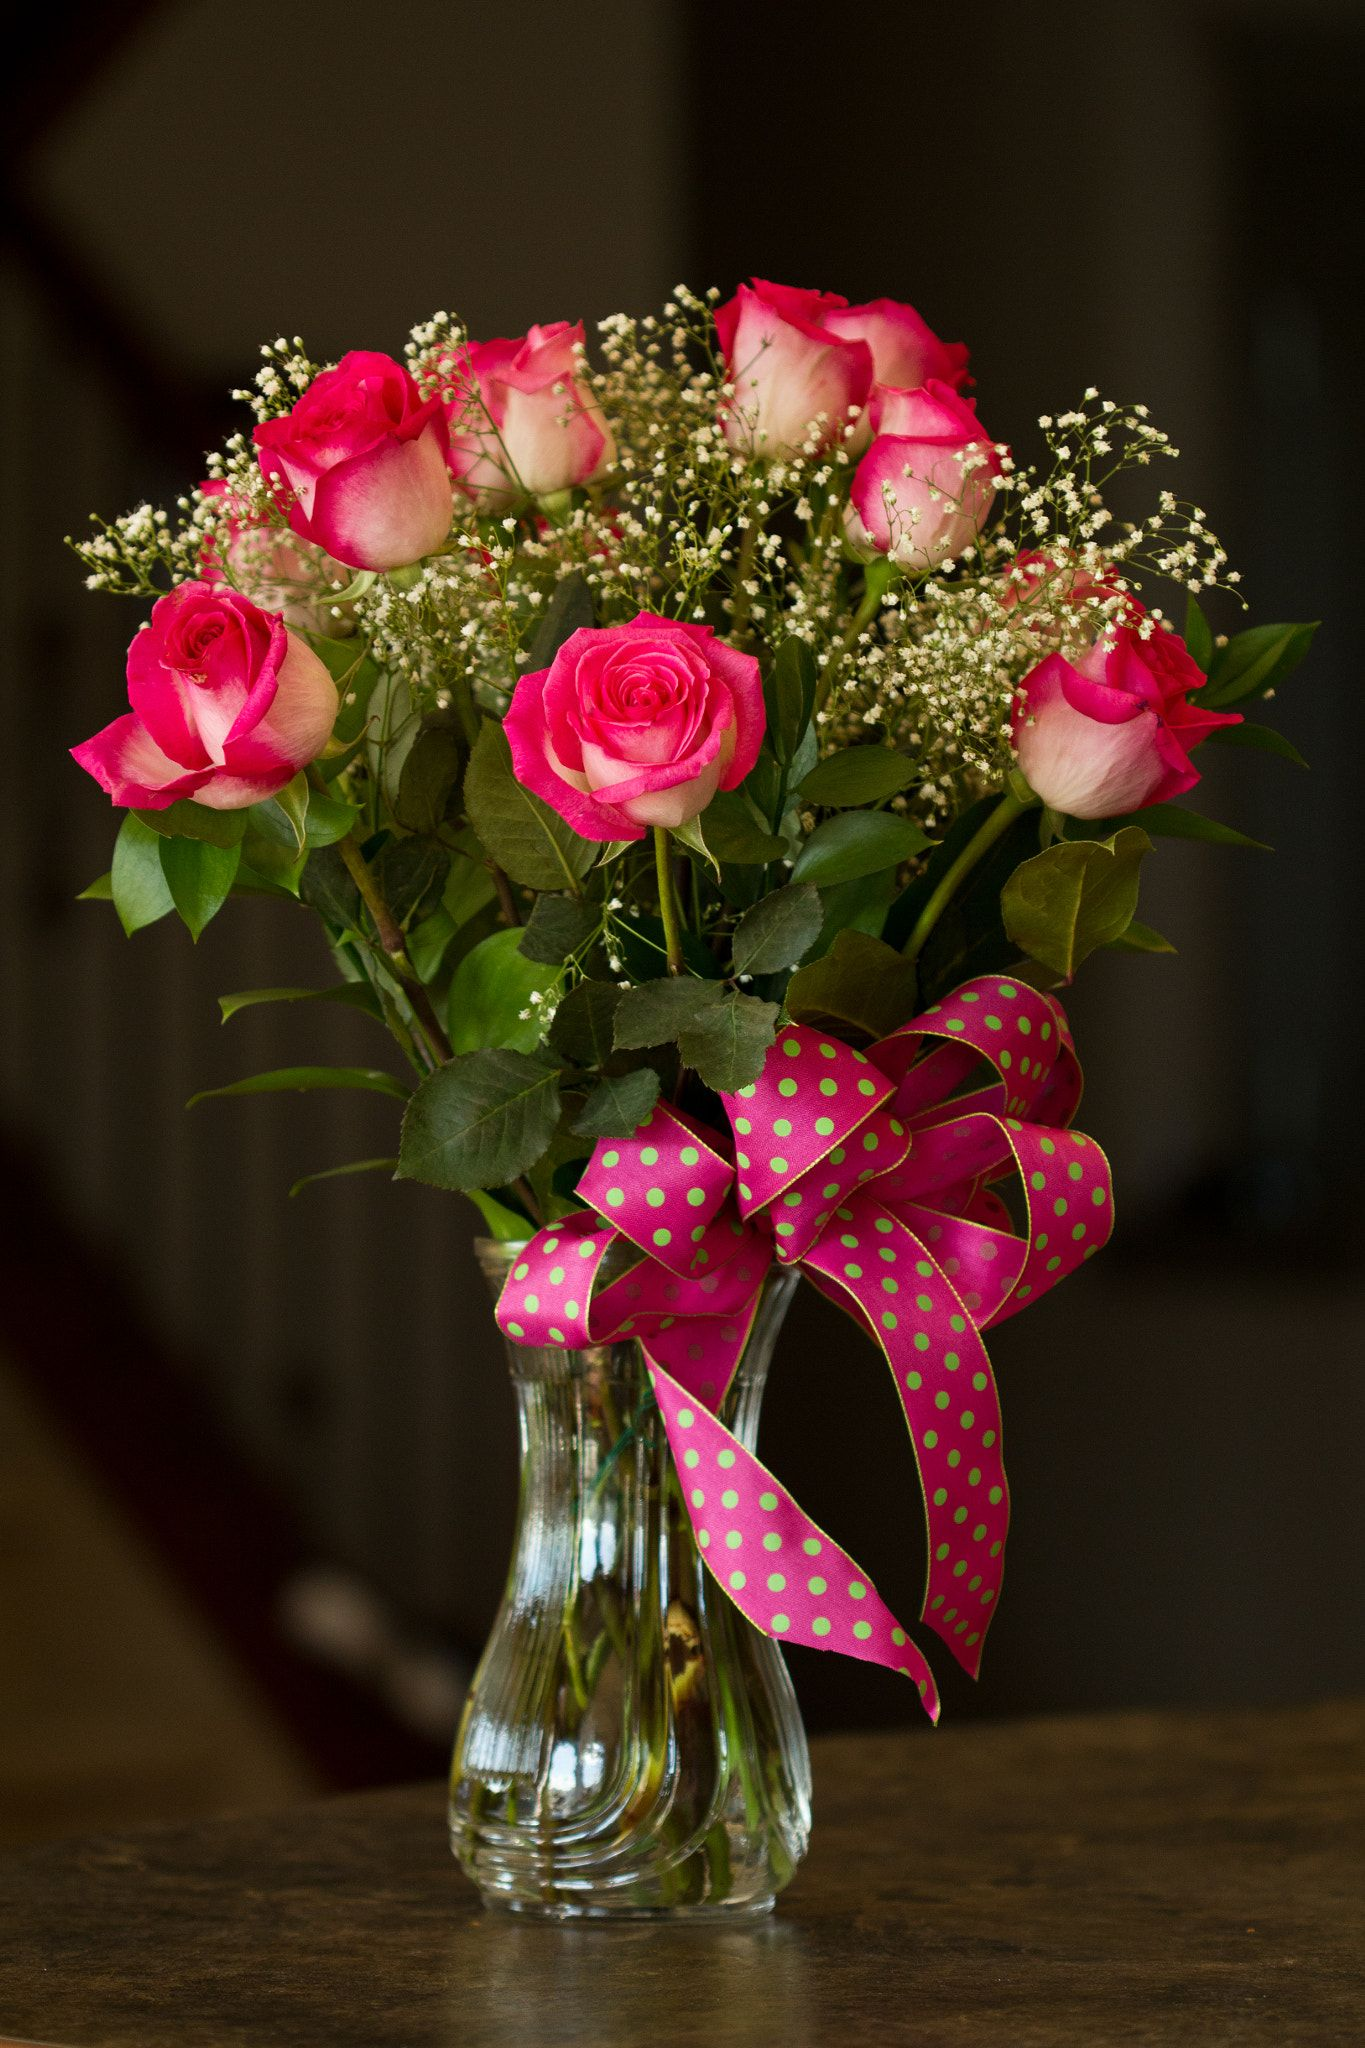 Bouquet of roses bouquet of pinkresd roses in the vase with the